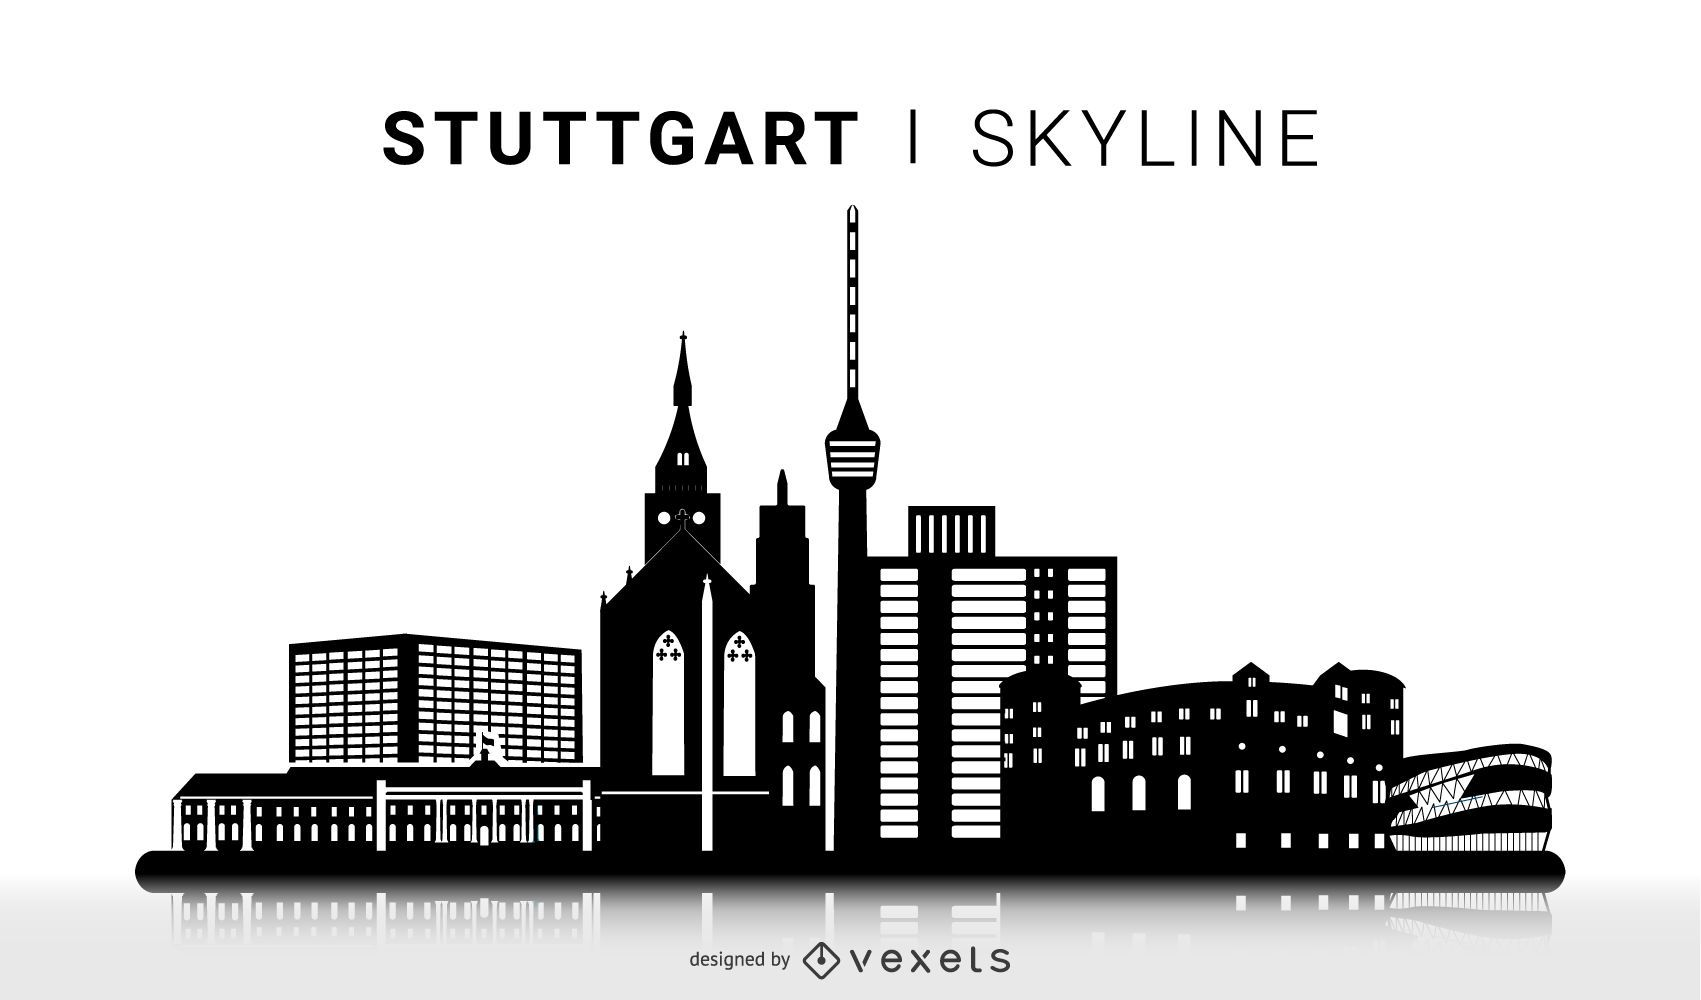 Stuttgart Silhouette Skyline Design - Vector download